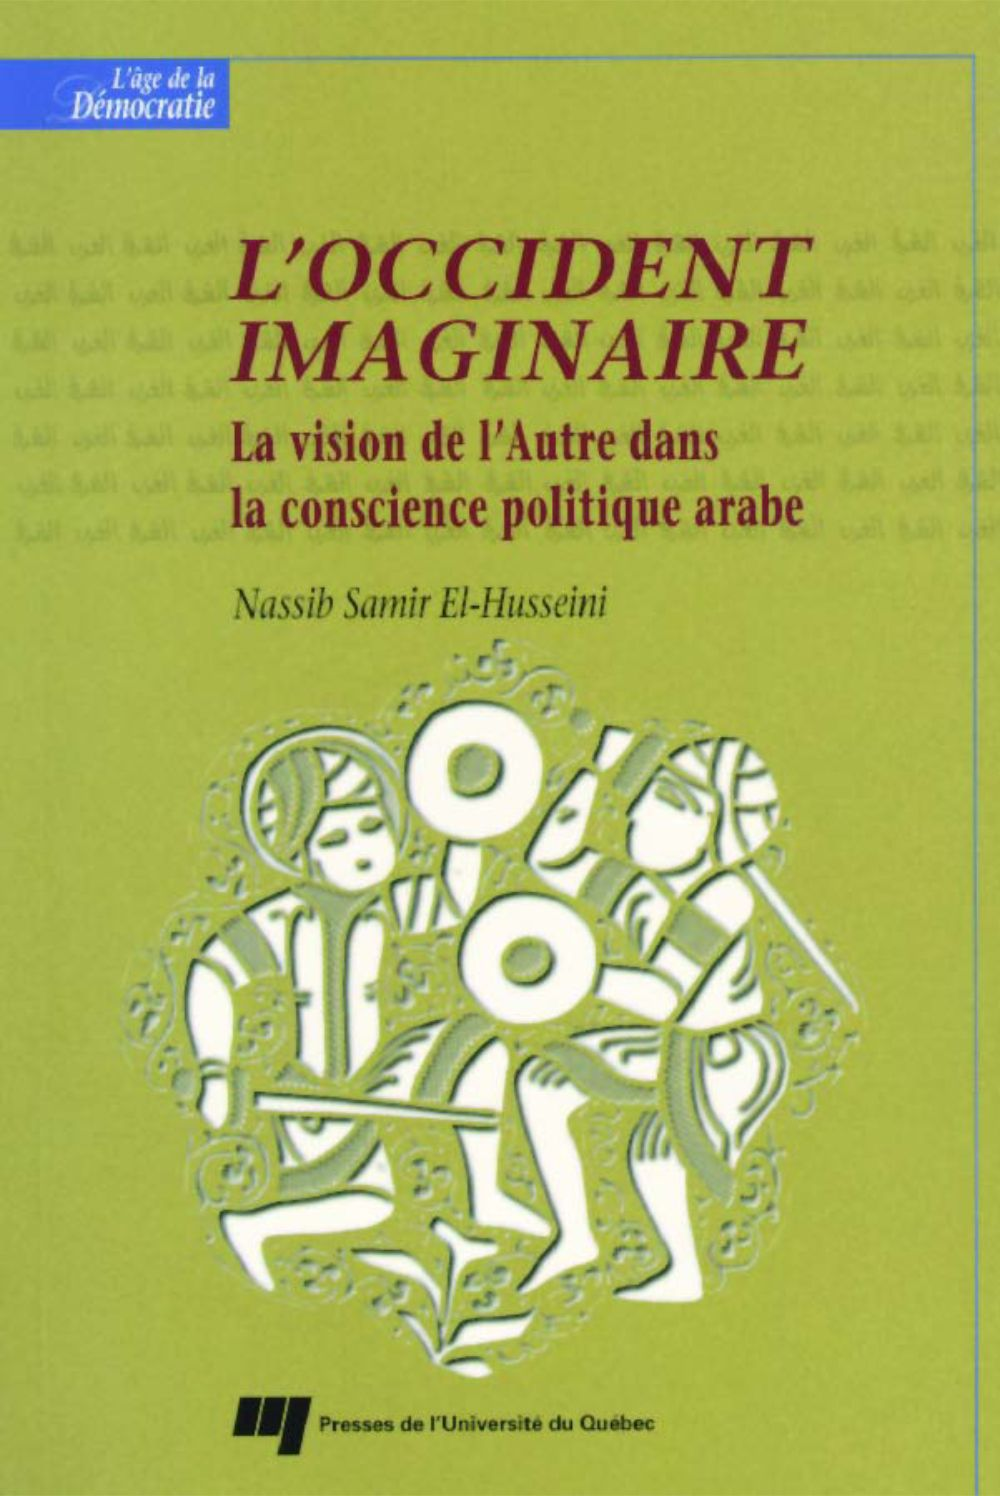 L'Occident imaginaire